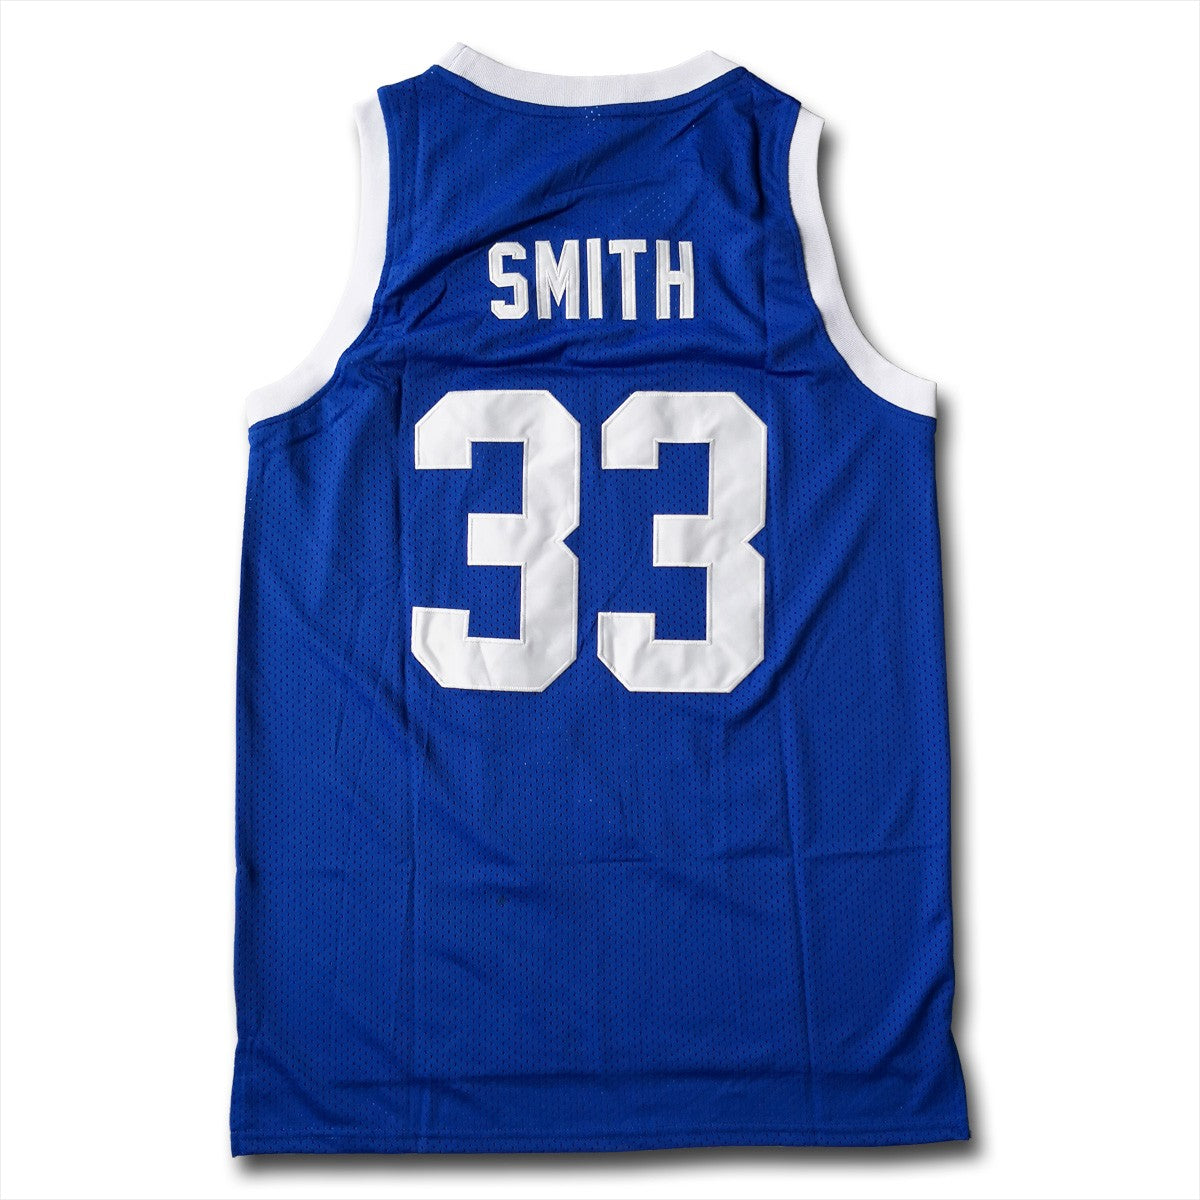 Will Smith #33 MTV Music Television Blue Basketball Jersey - SeeThru™